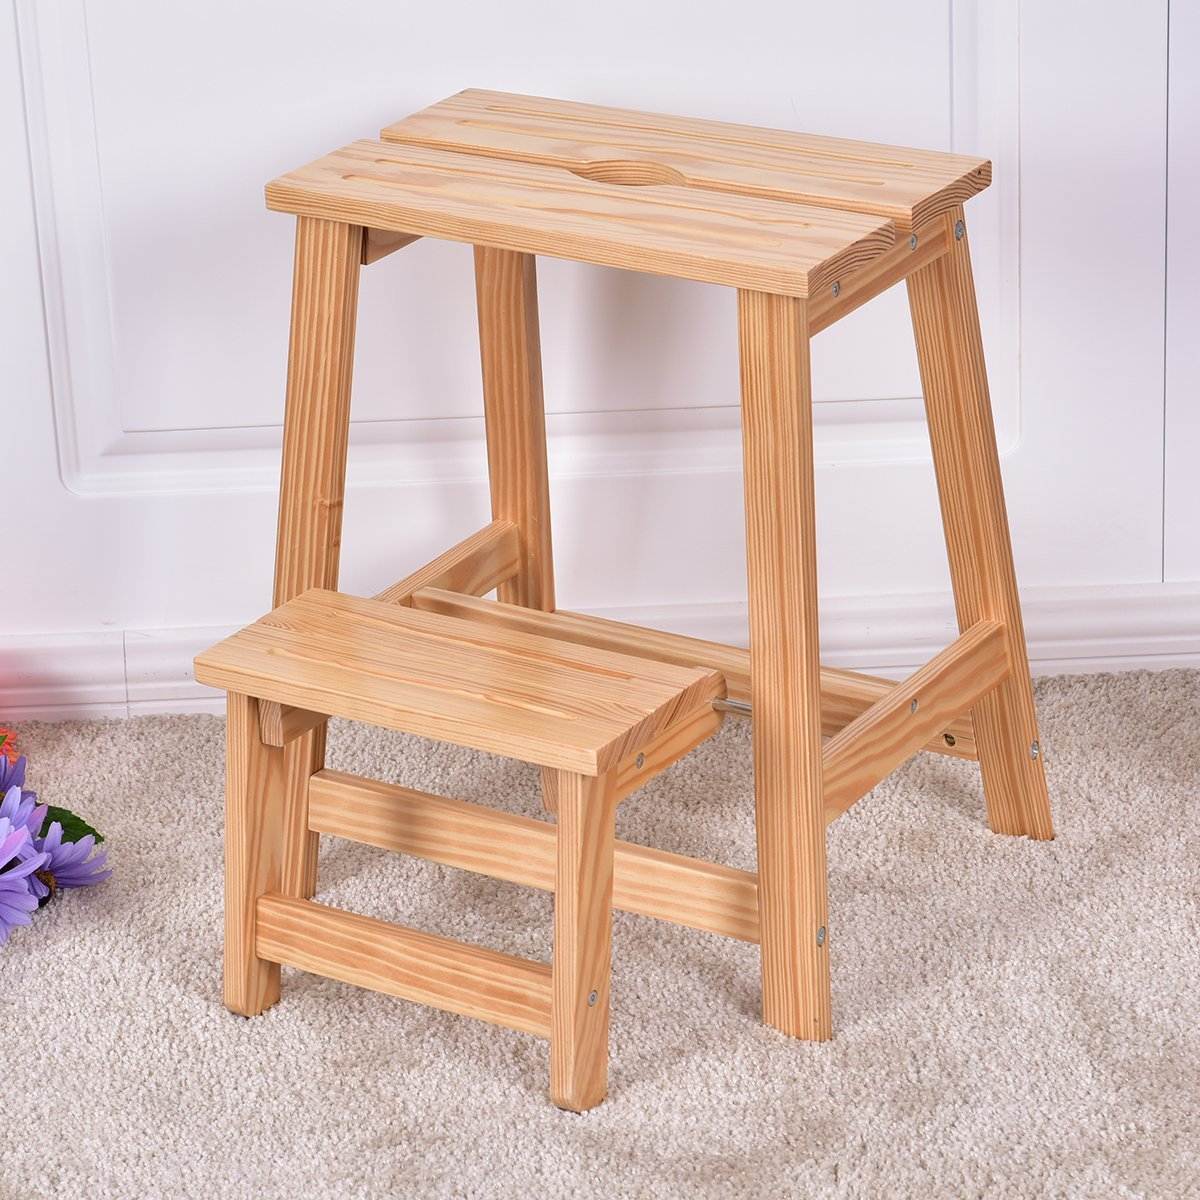 2 Tier Solid Wood Folding Kids Ladder Bench Step Stool